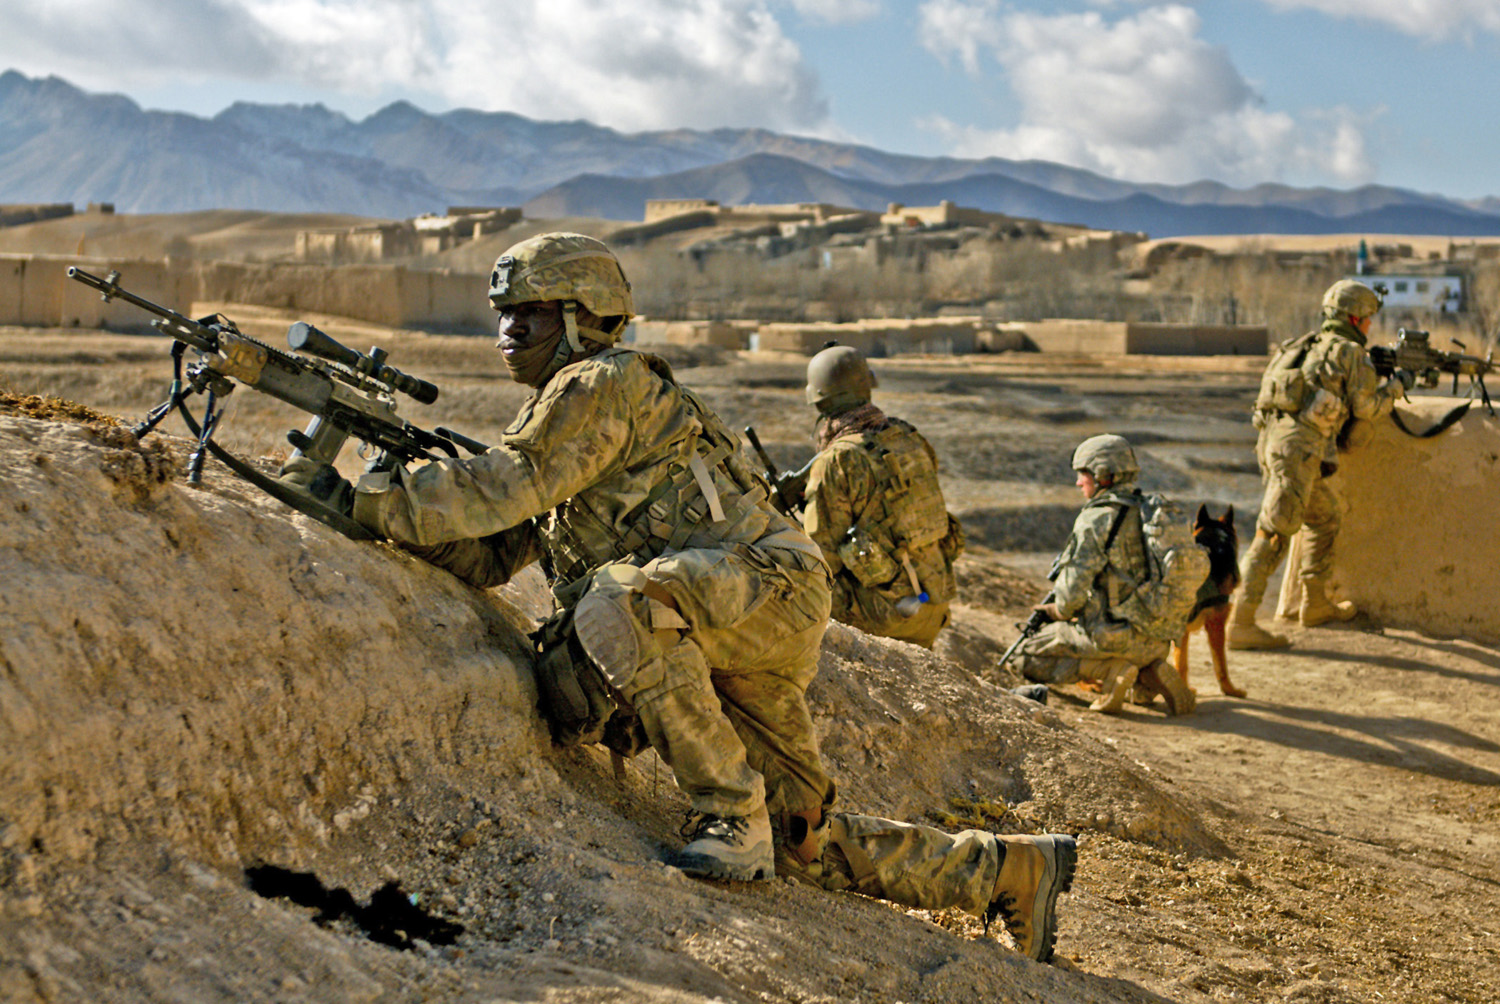 Multicam in Afghanistan